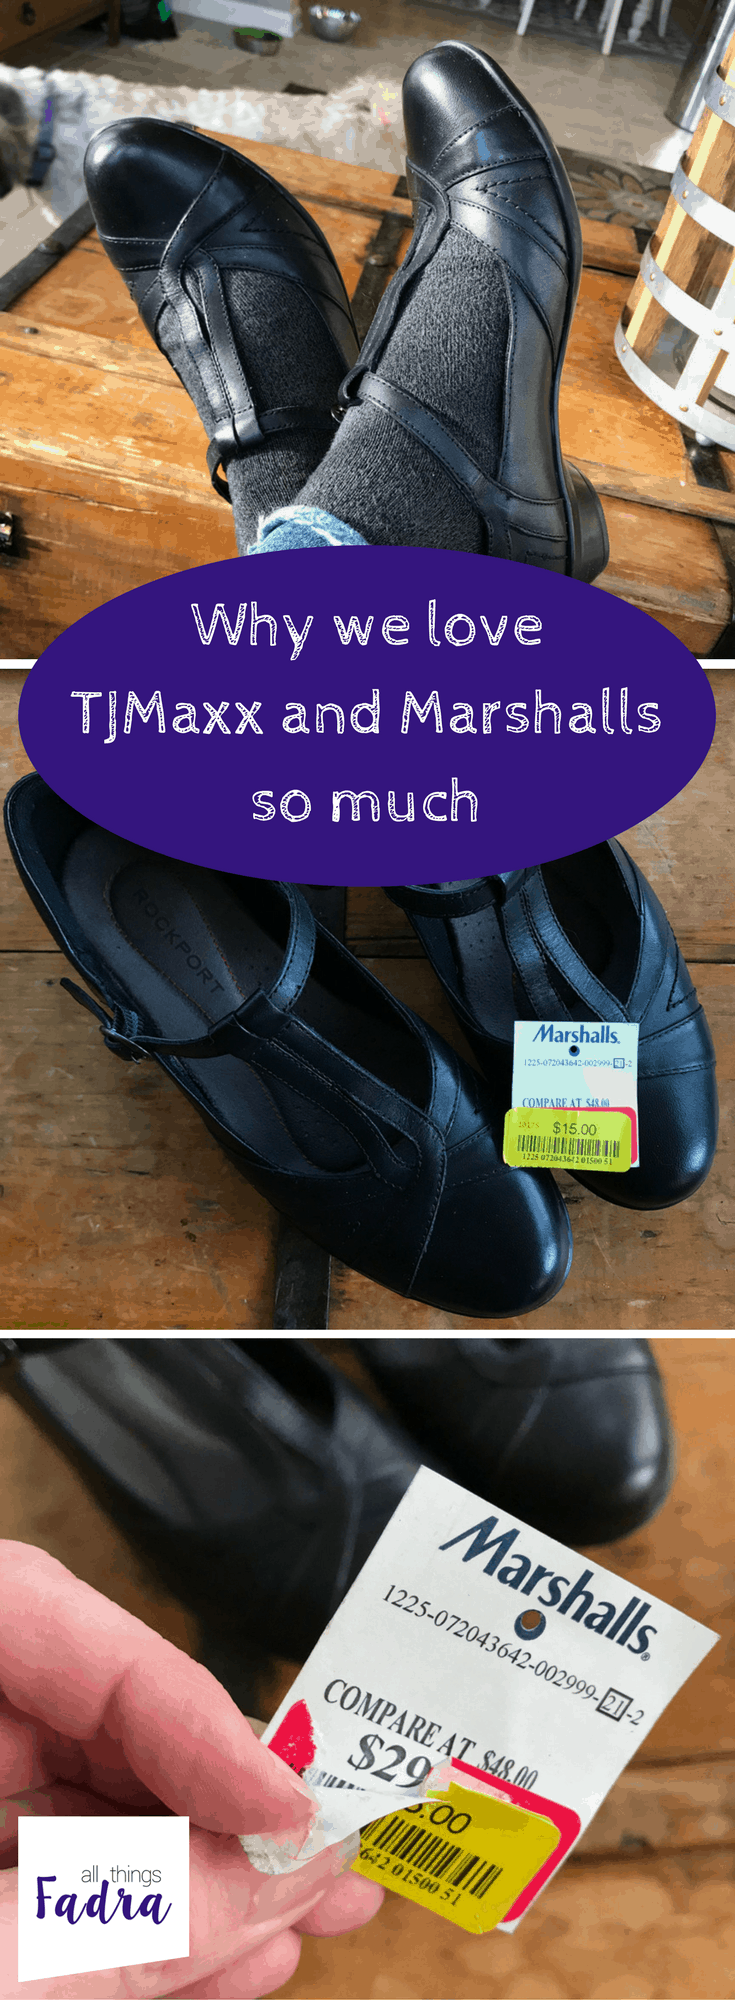 Why we love TJMaxx and Marshalls so much